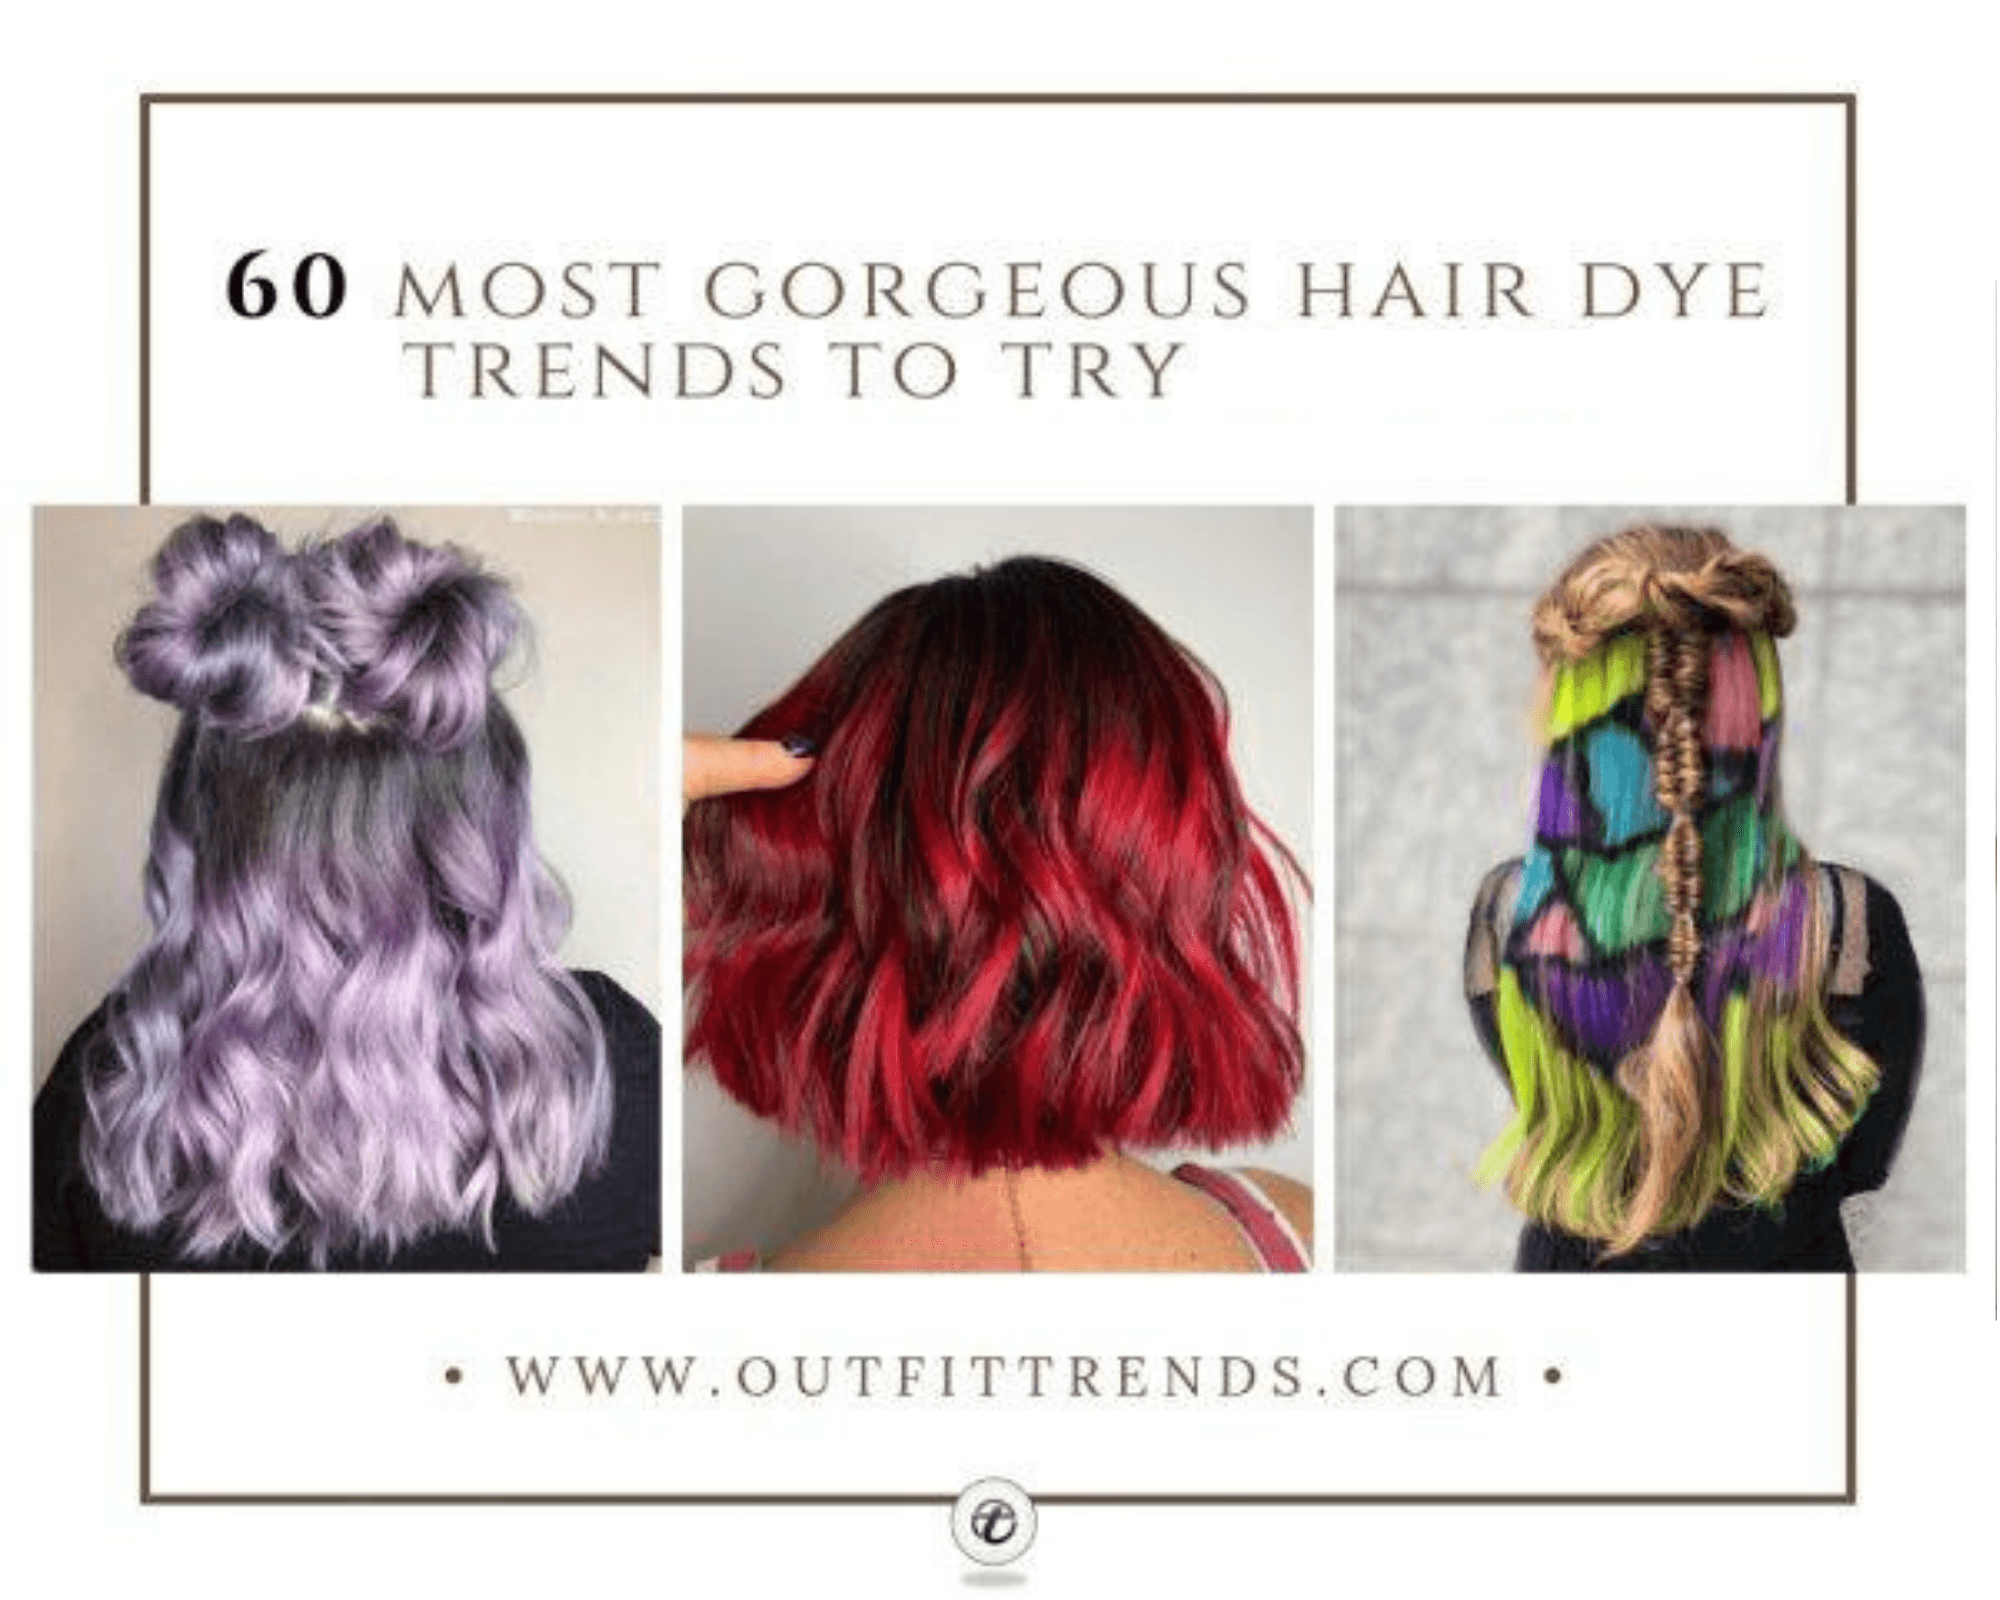 60 Most Gorgeous Hair Dye Trends For Women To Try In 2021